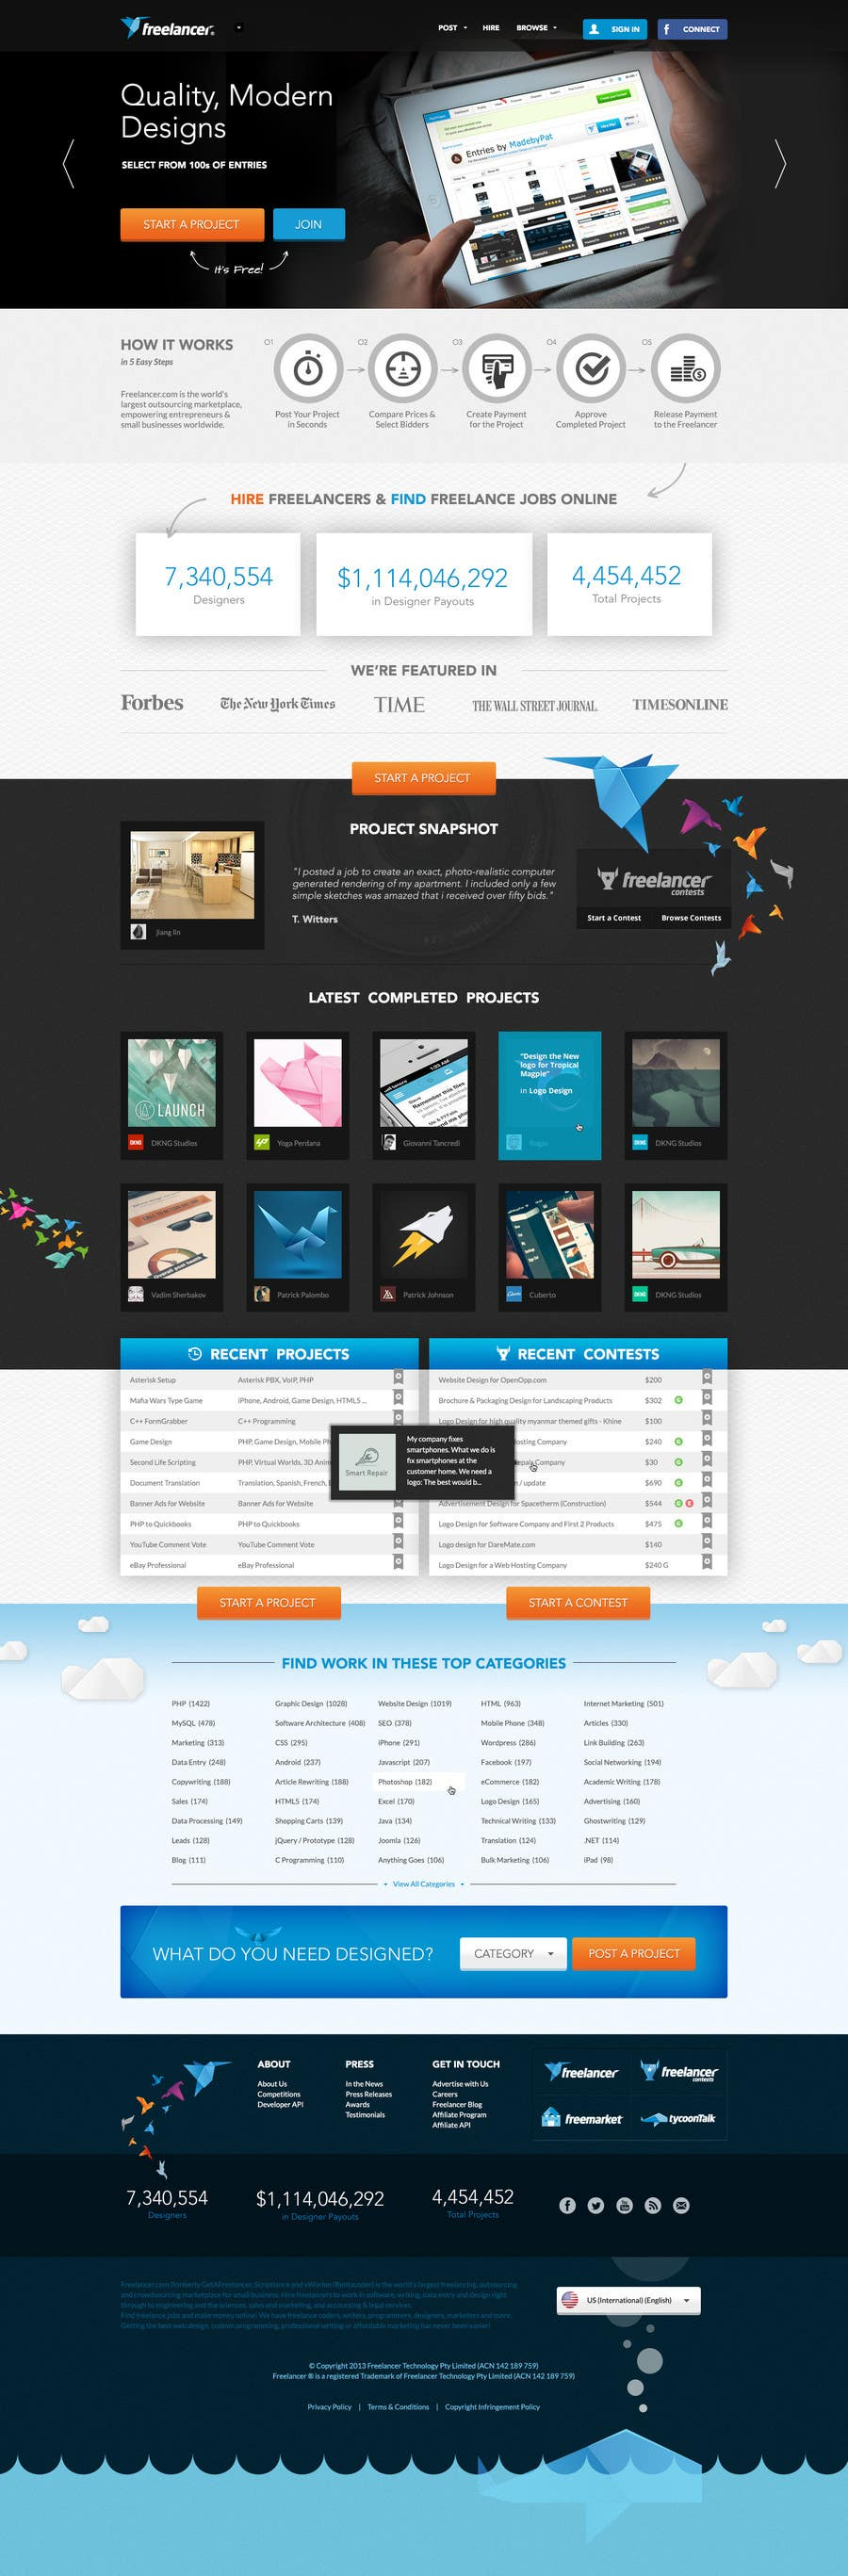 #577 for Freelancer.com contest! Design our Homepage! by MadebyPat